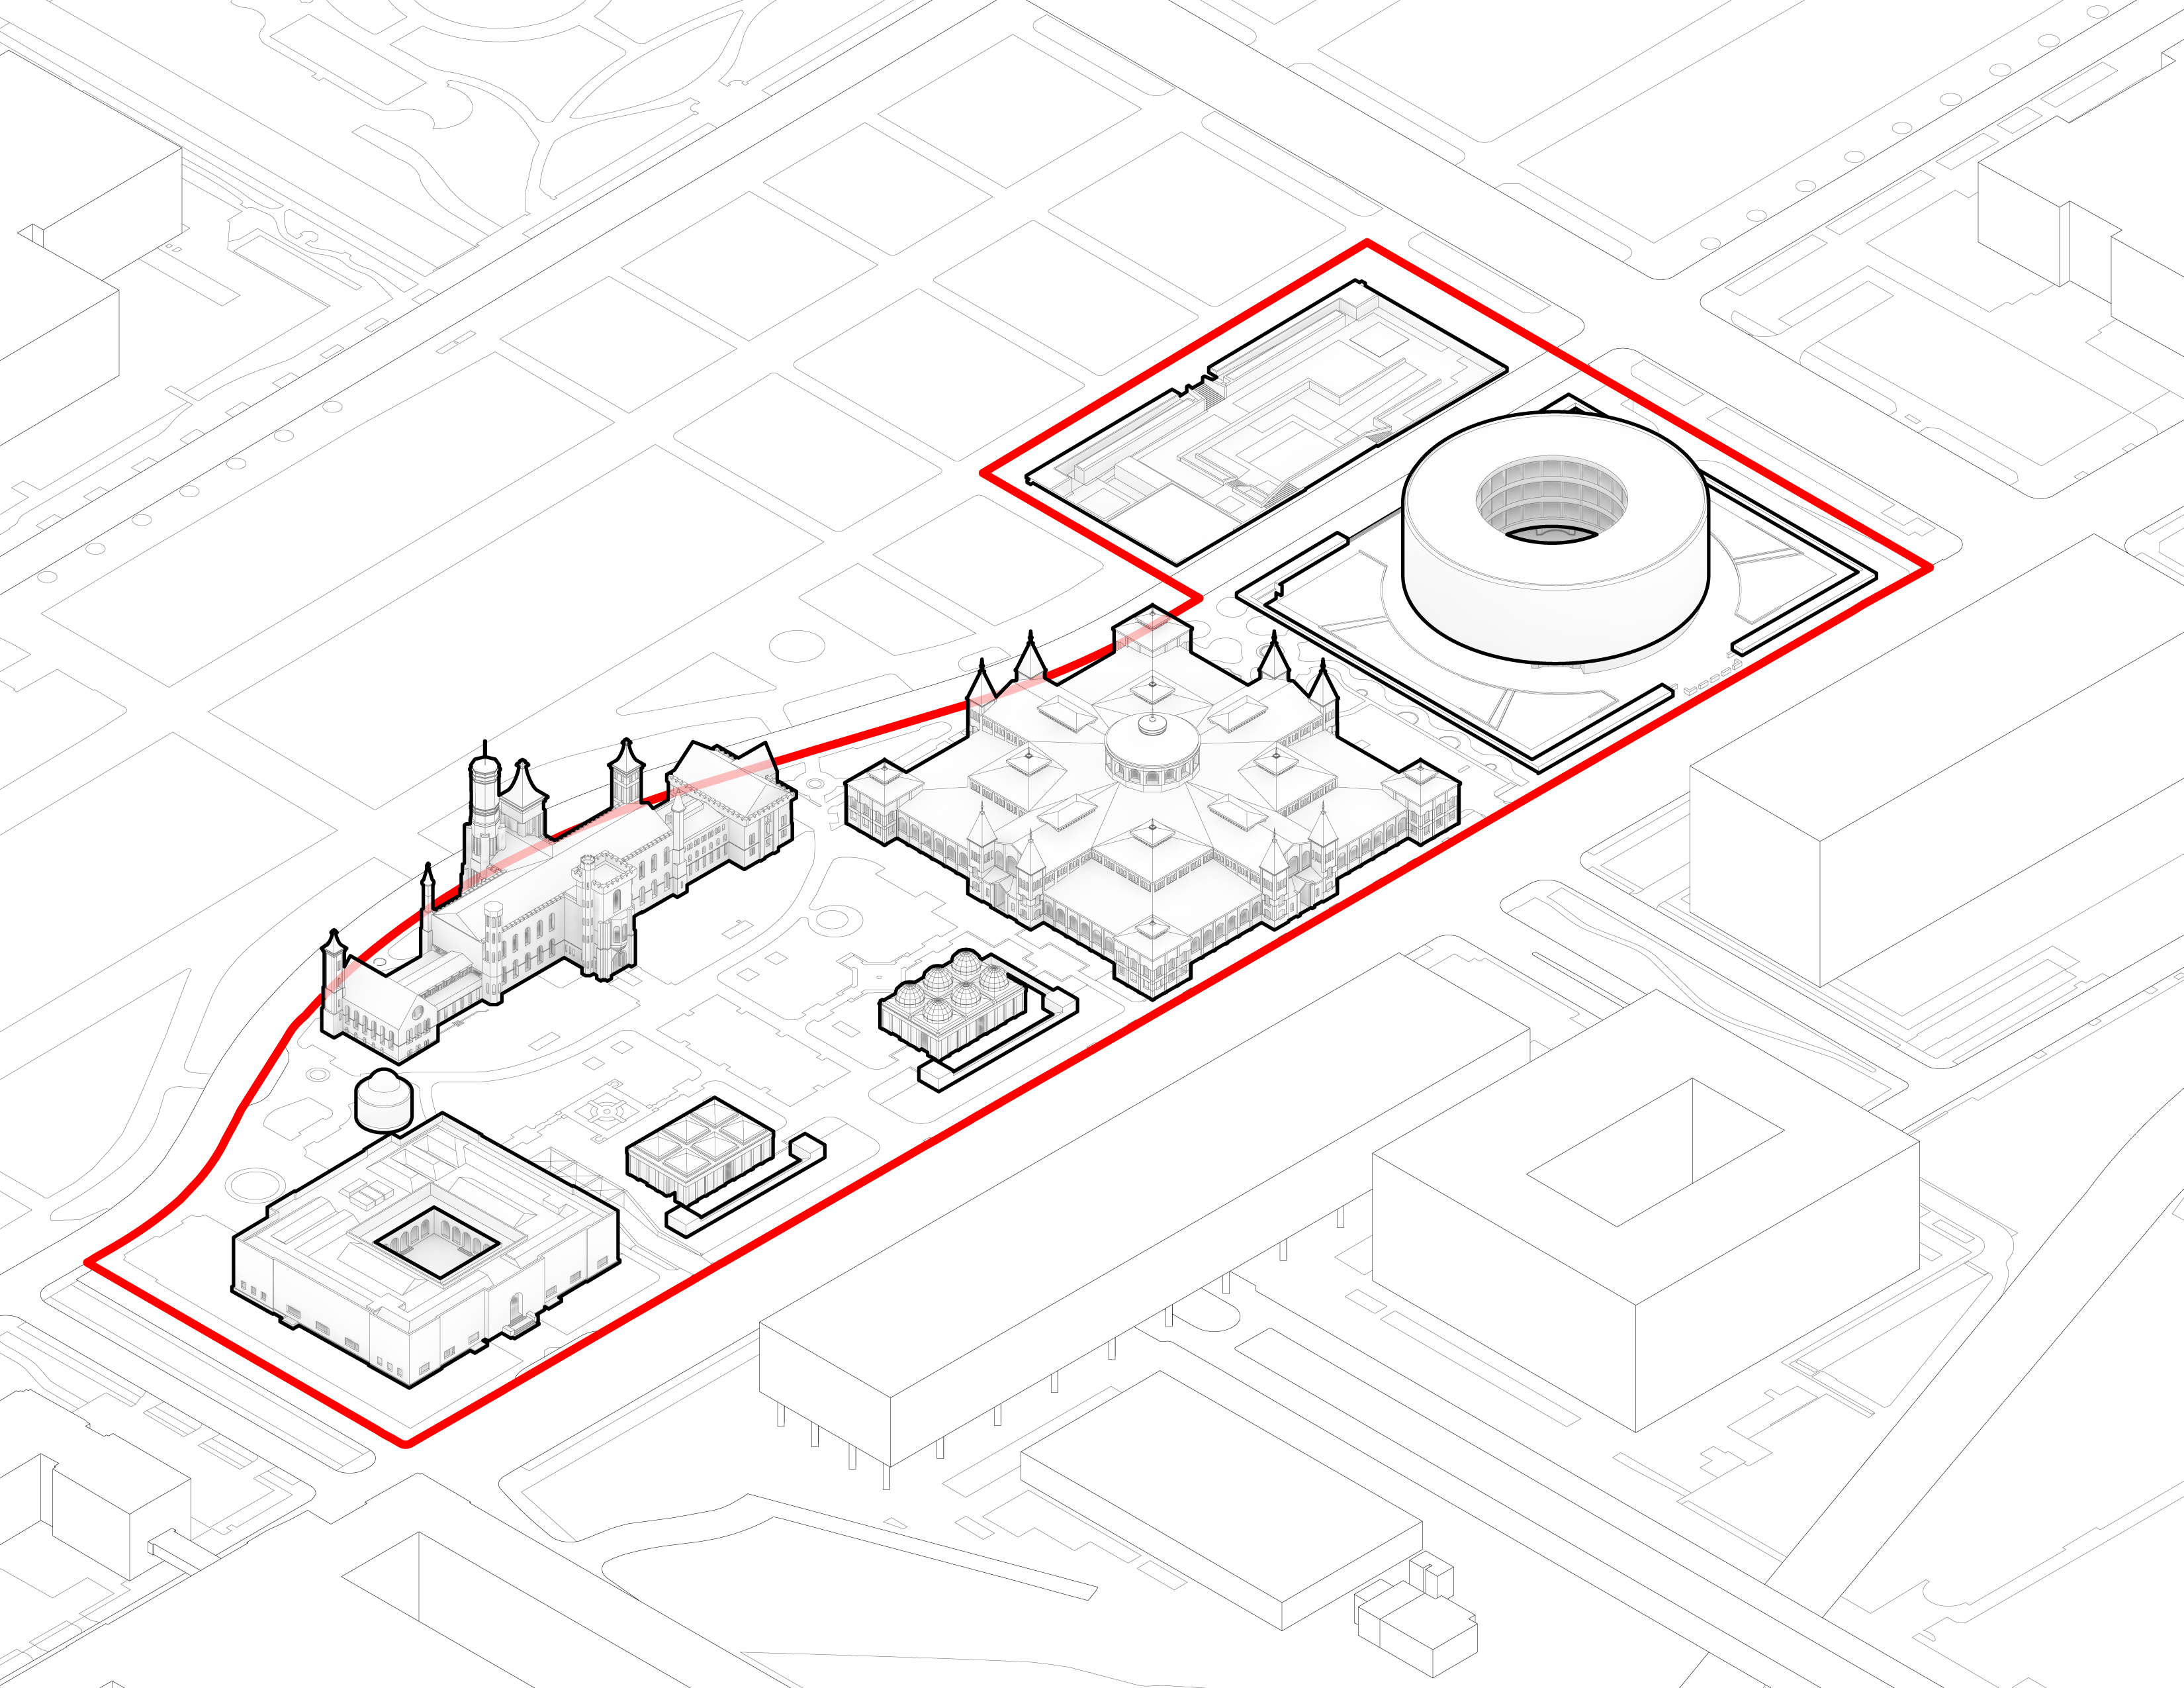 Diagram of Smithsonian buildings on the National Mall